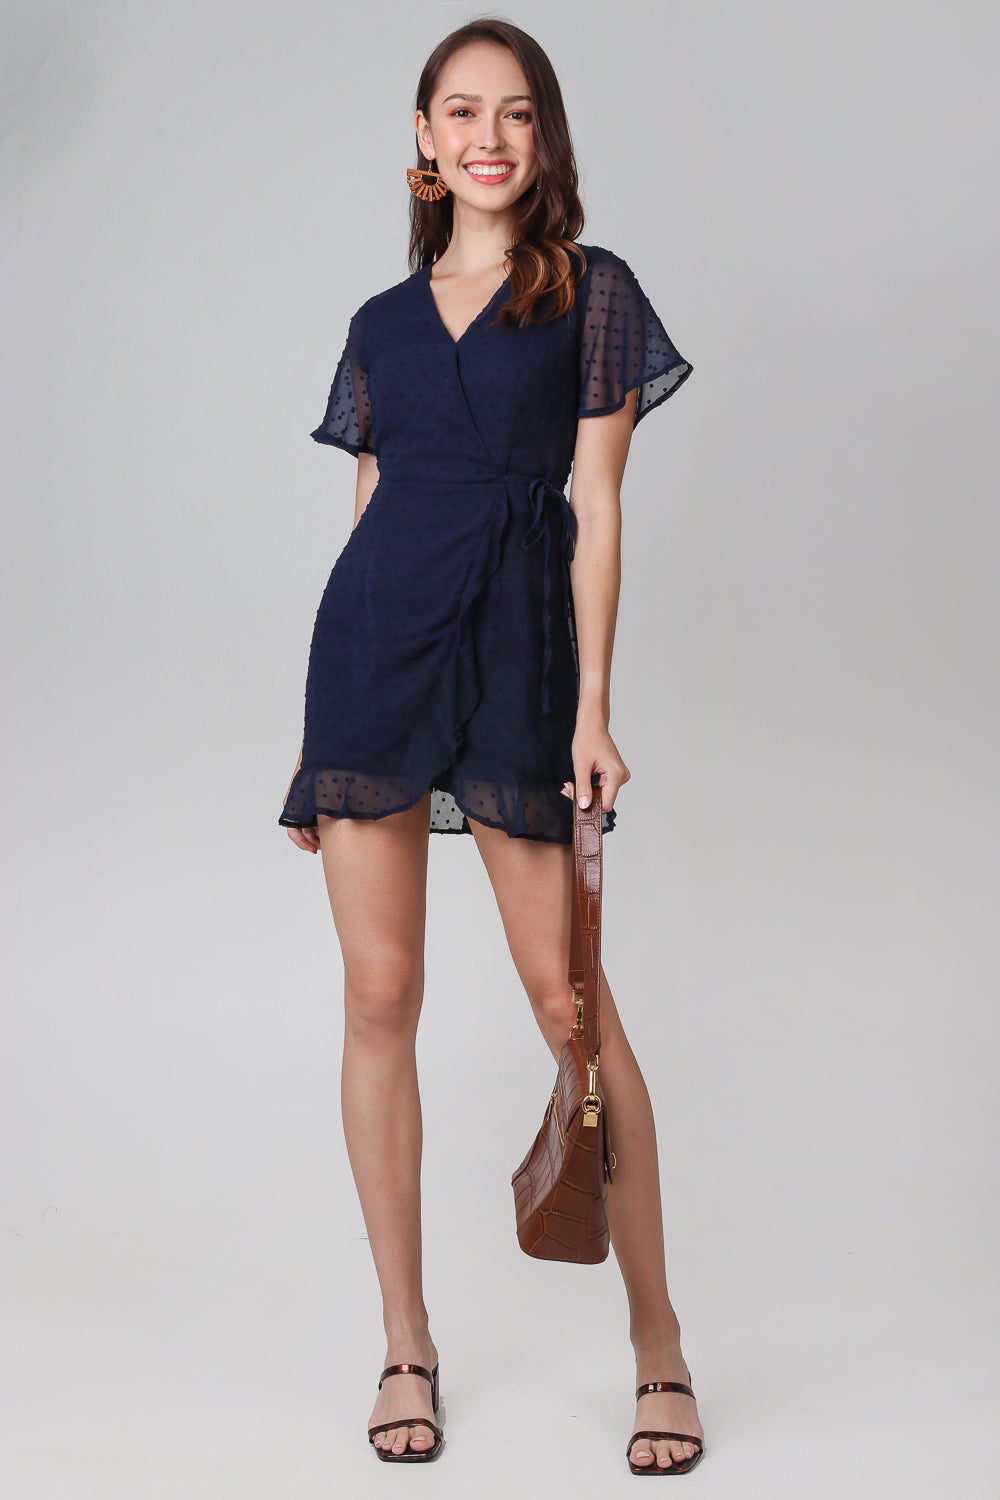 Ethel Swiss Dots Playsuit in Navy